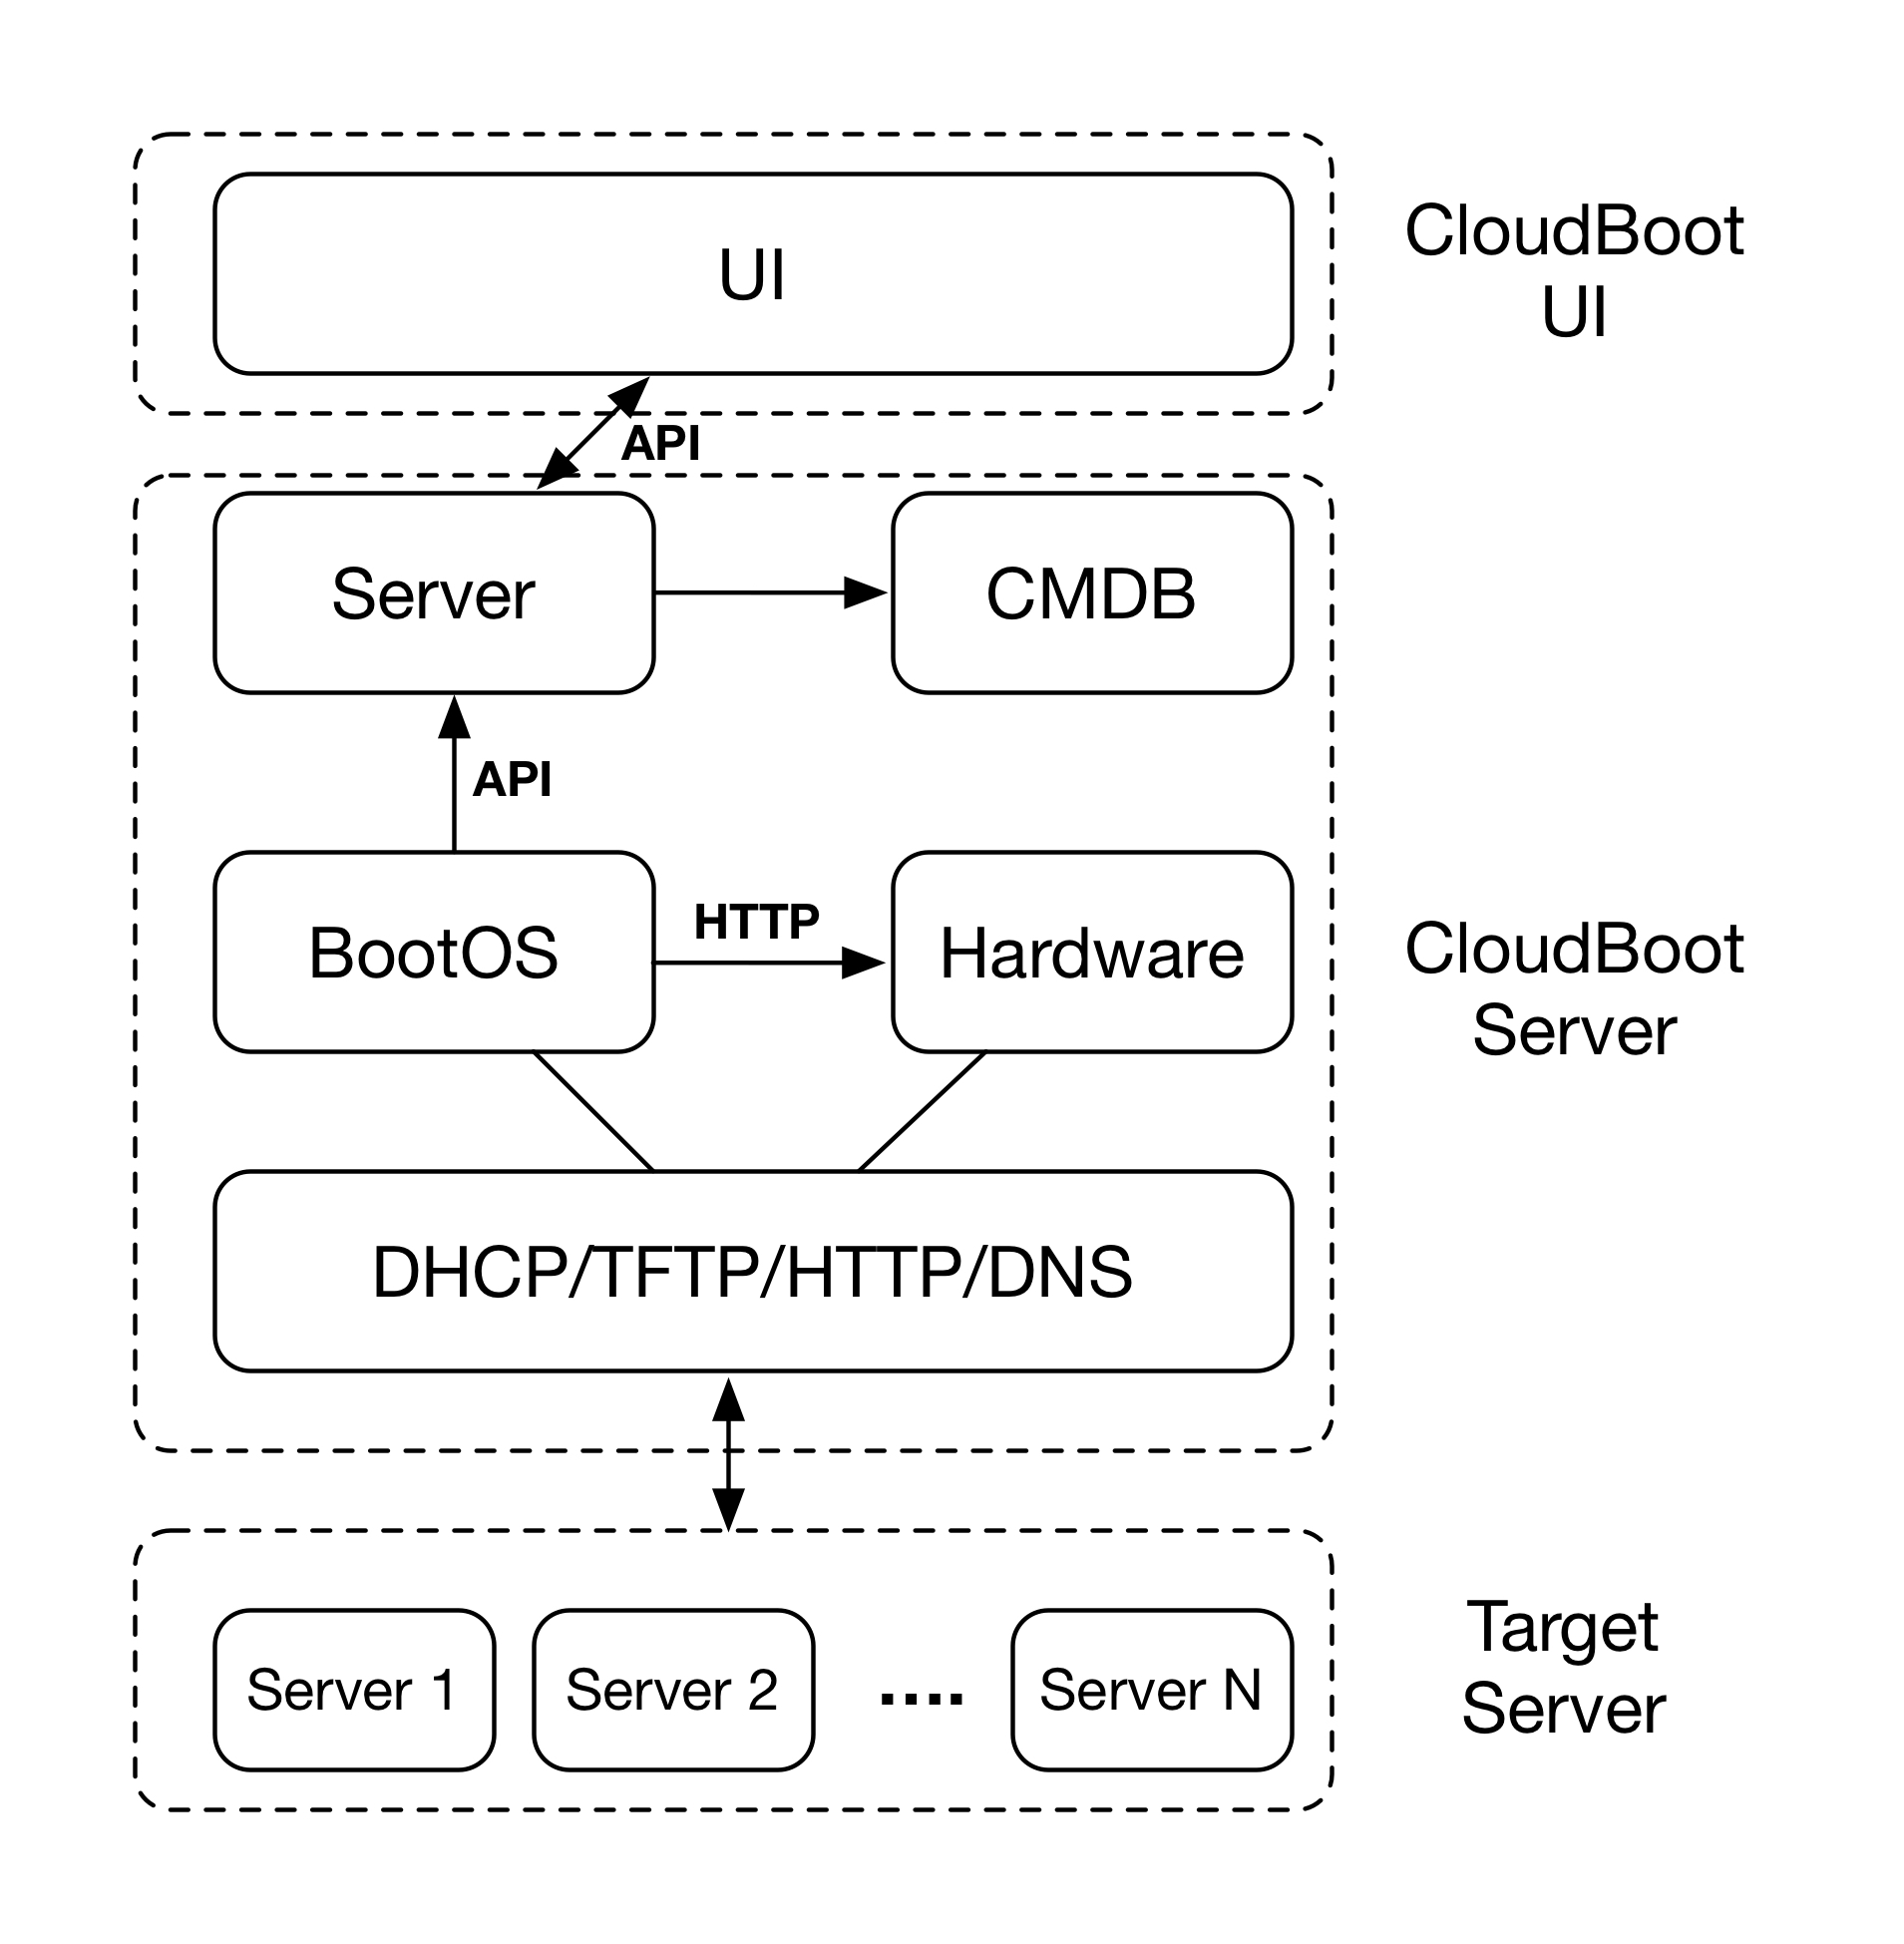 hight resolution of architecture diagram cloudboot system architecture